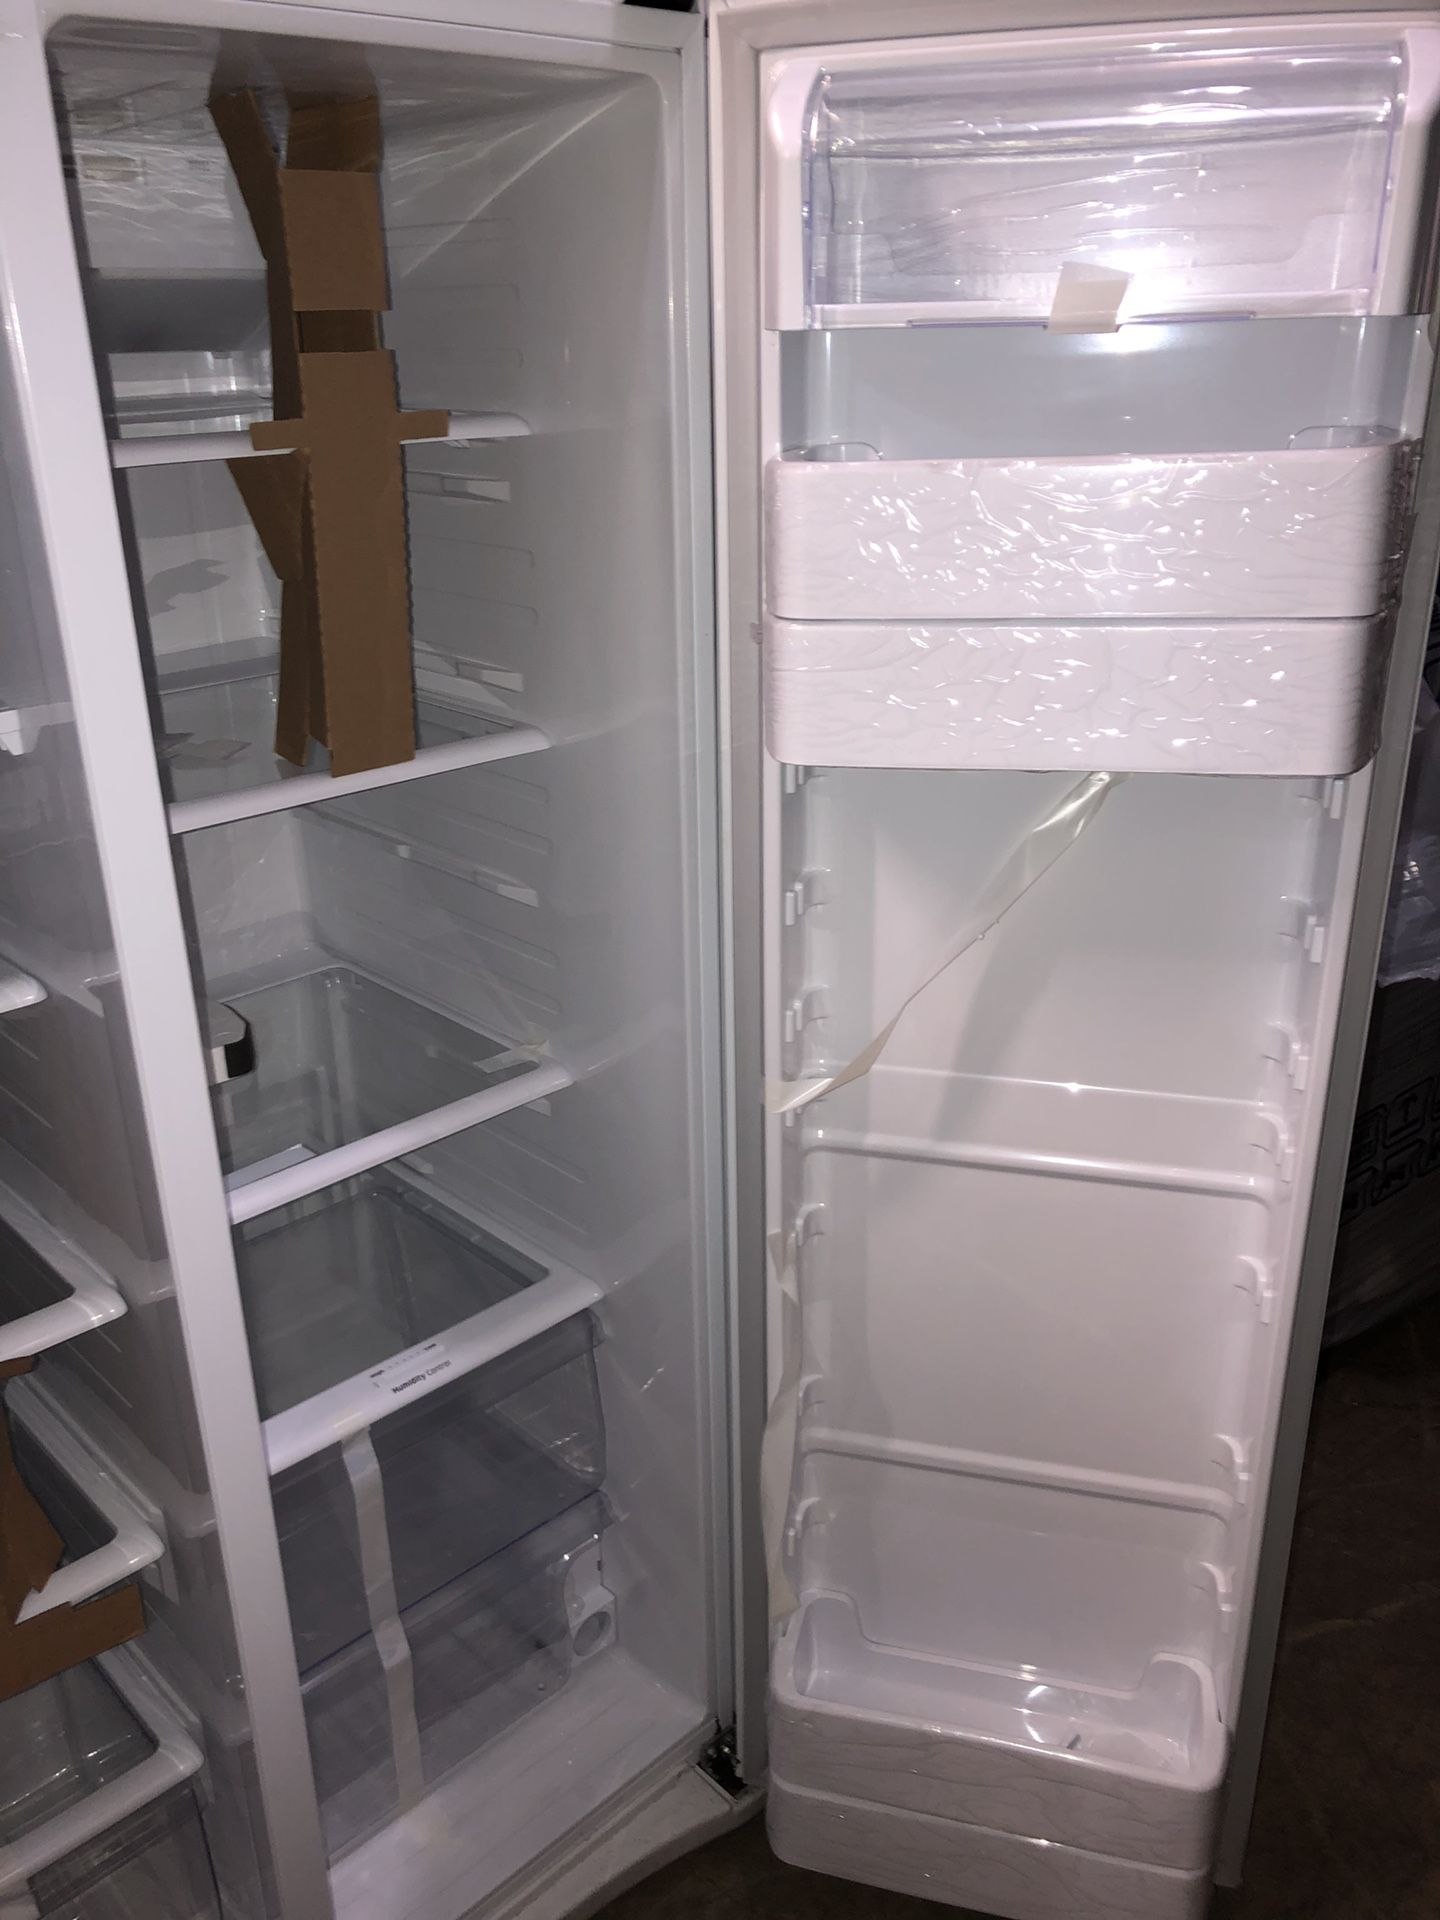 samsung white side by side fridge with water/ice dispenser